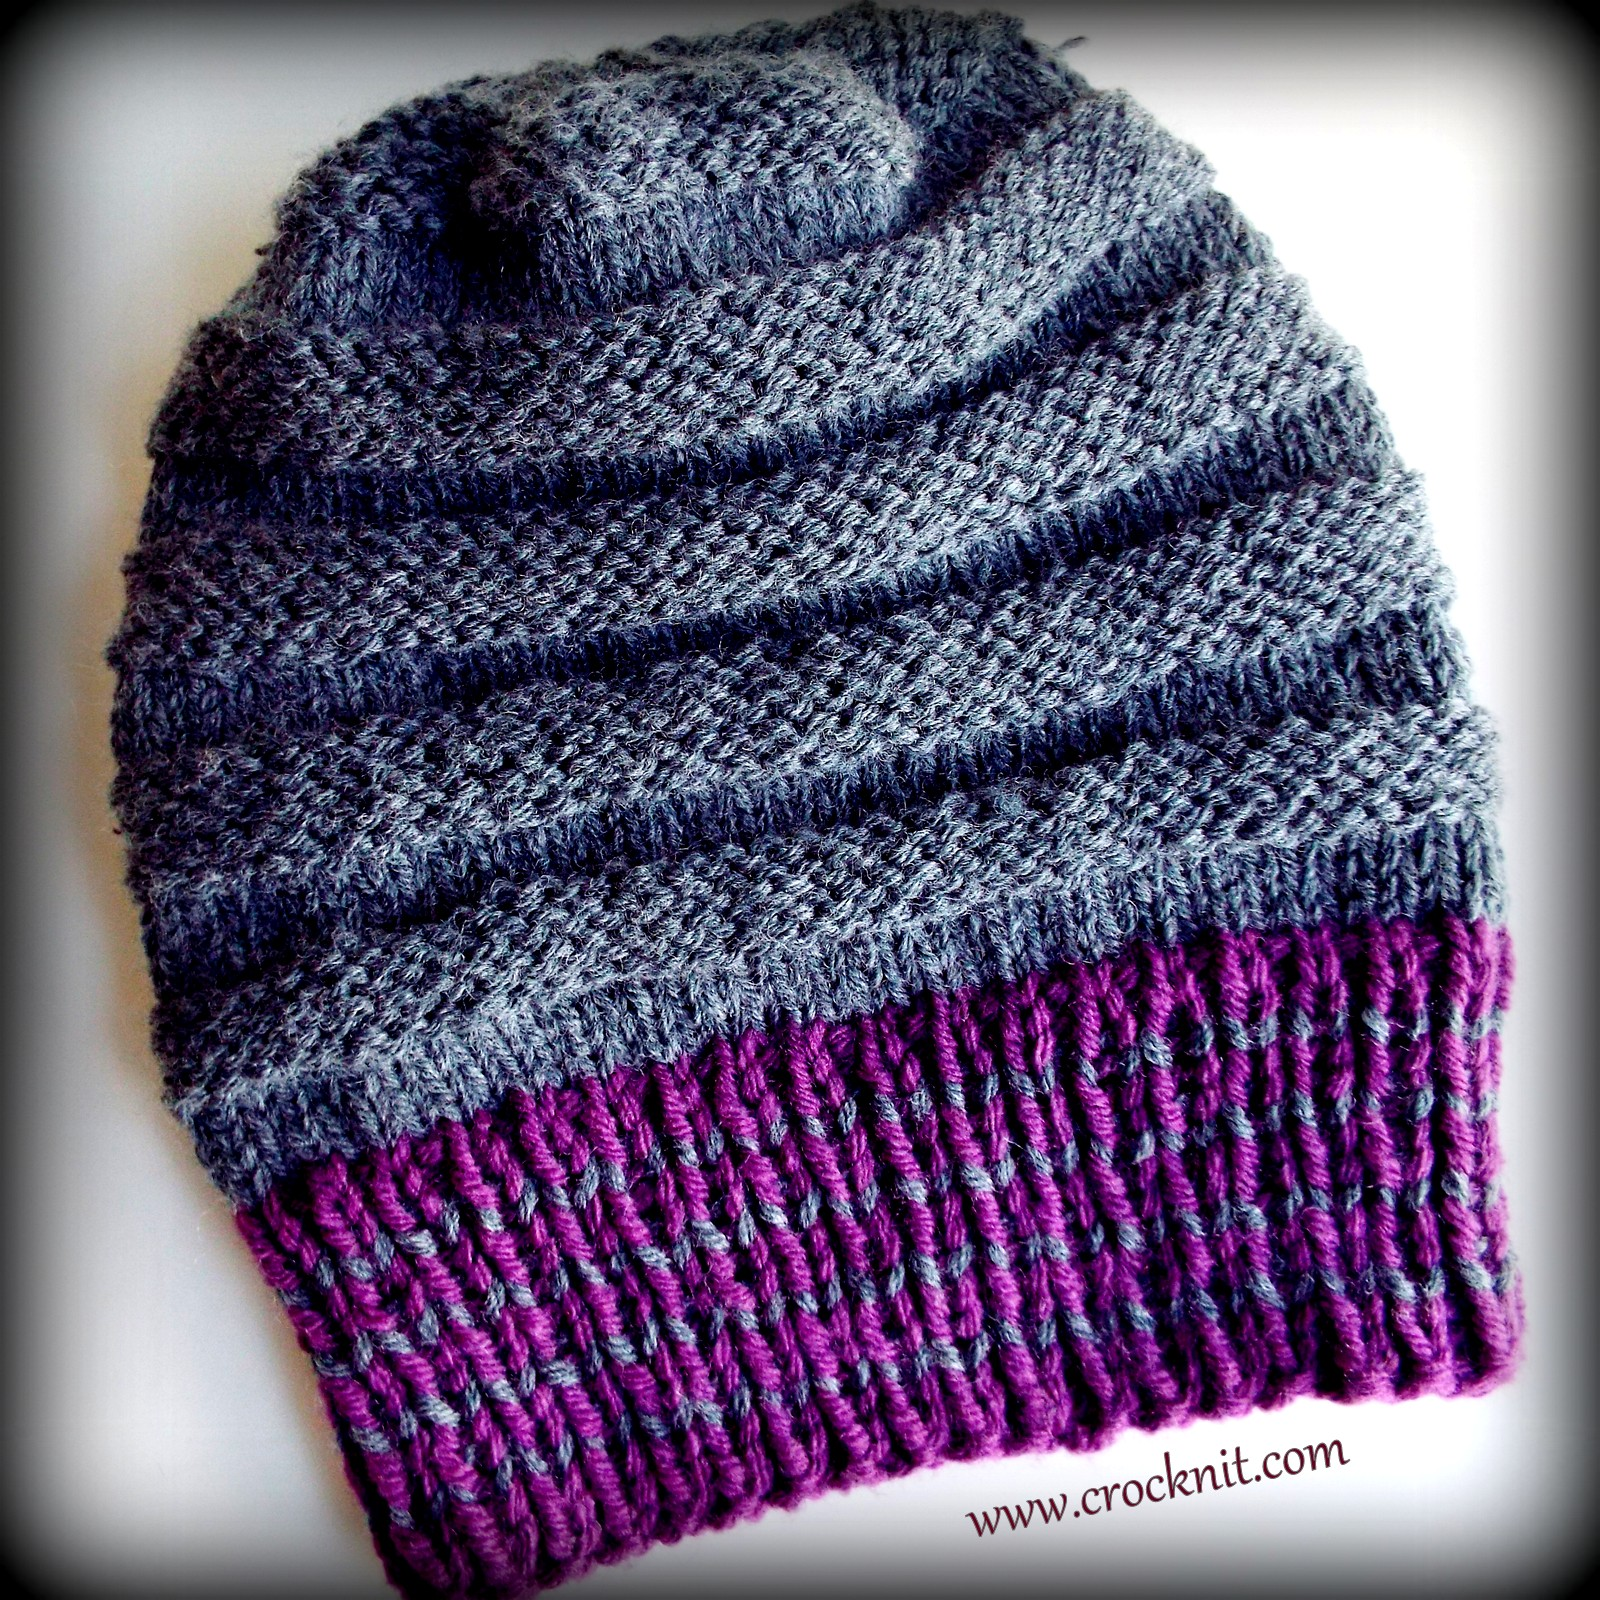 MICROCKNIT CREATIONS: BUZZ BUZZ Knit Slouchy Hat